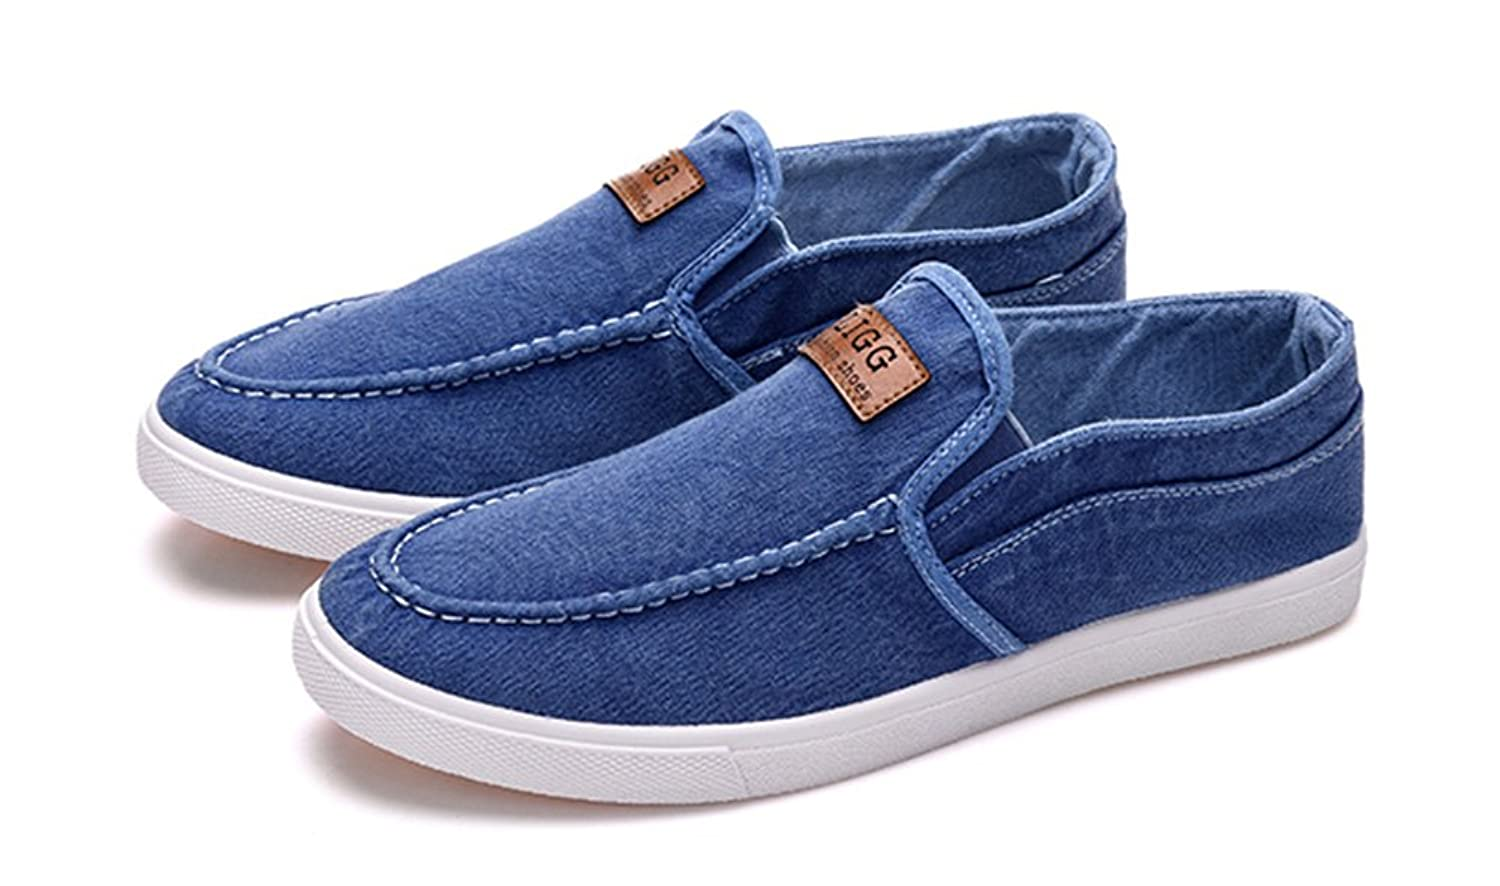 Aisun Men's Casual Comfy Elastic Slip On Jeans Loafers Shoes